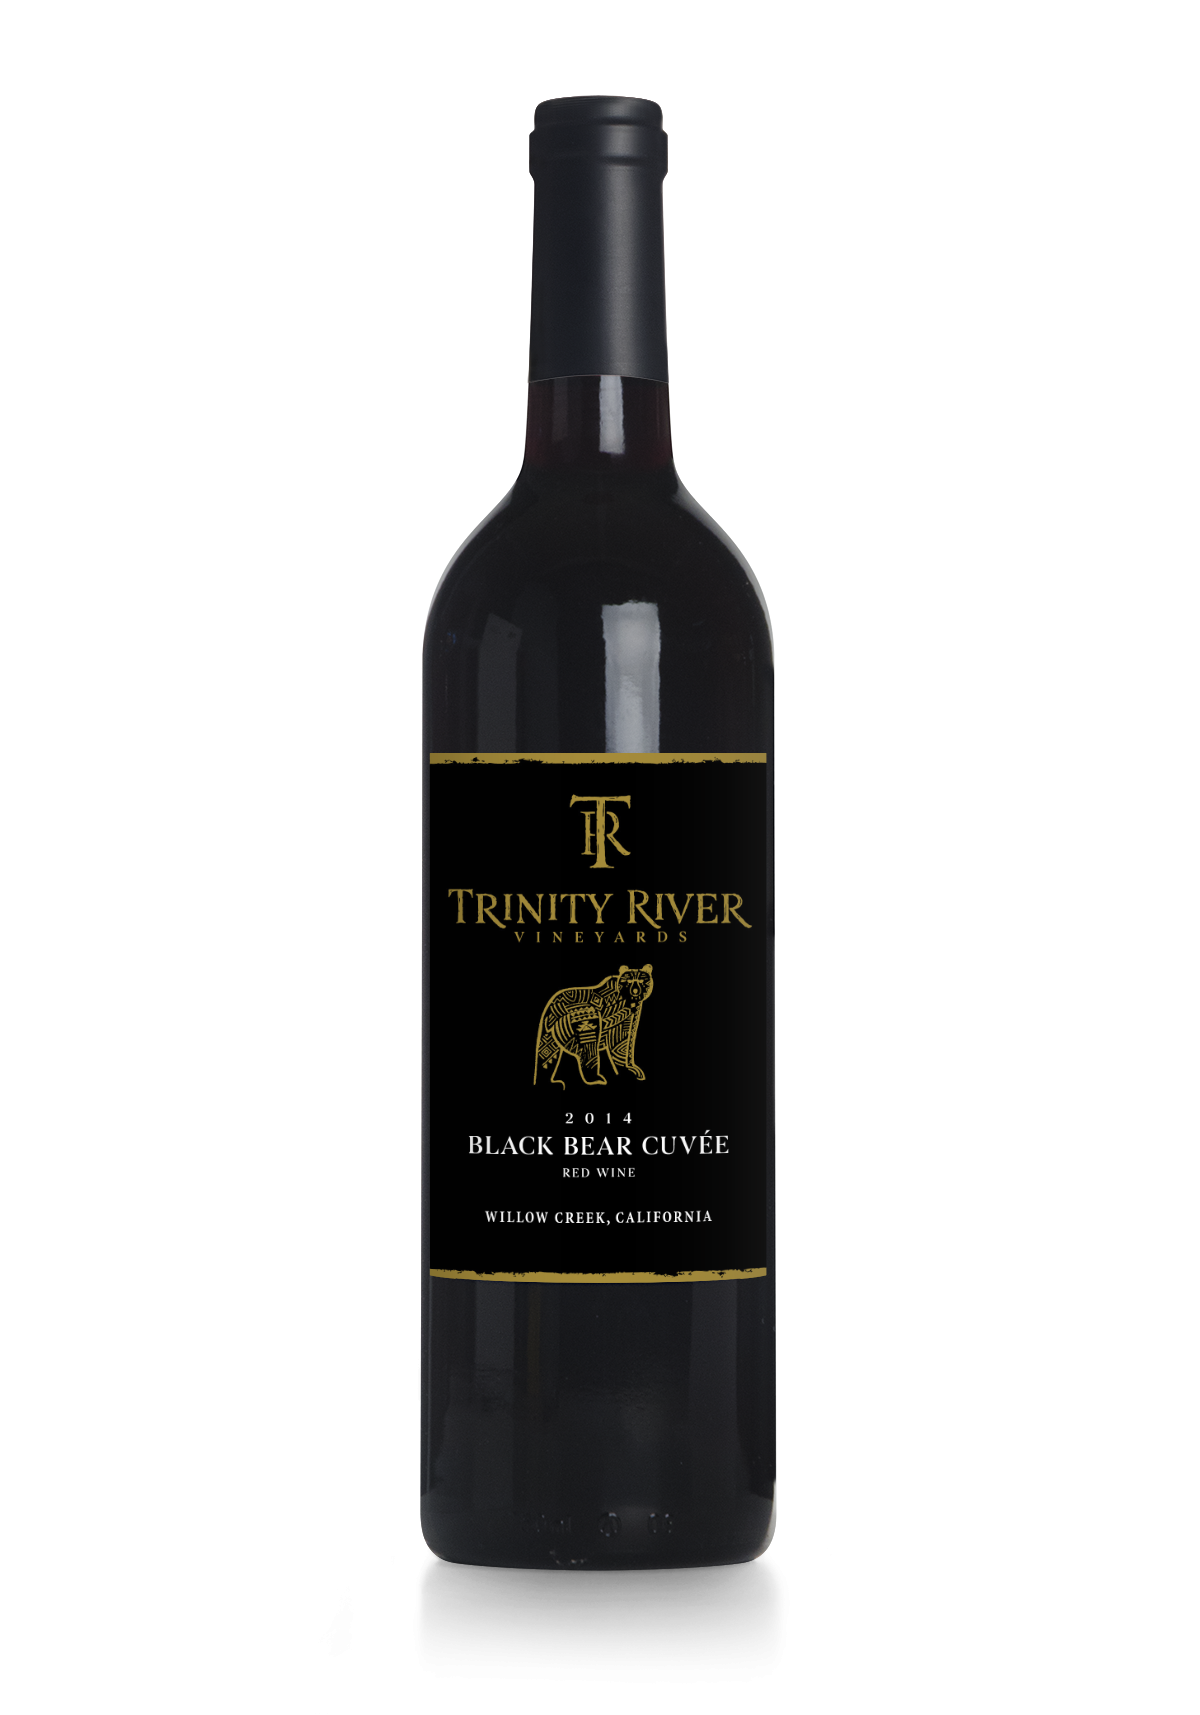 Black Bear Cuvee - 2016   This is a bold, bright blend of Cabernet Sauvignon, Merlot Malbec and Cabernet Franc. The flavors and aromas are red to black fruit, like coastal black berry as opposed to the darker Himalaya berry. There is a touch of pepper and cedar box in the finish. The mouthfeel is smooth and rich balanced by cool-climate acidity, more typical for the northern and mountainous Humboldt County. Ready now, it will only improve over the next 15+ years.